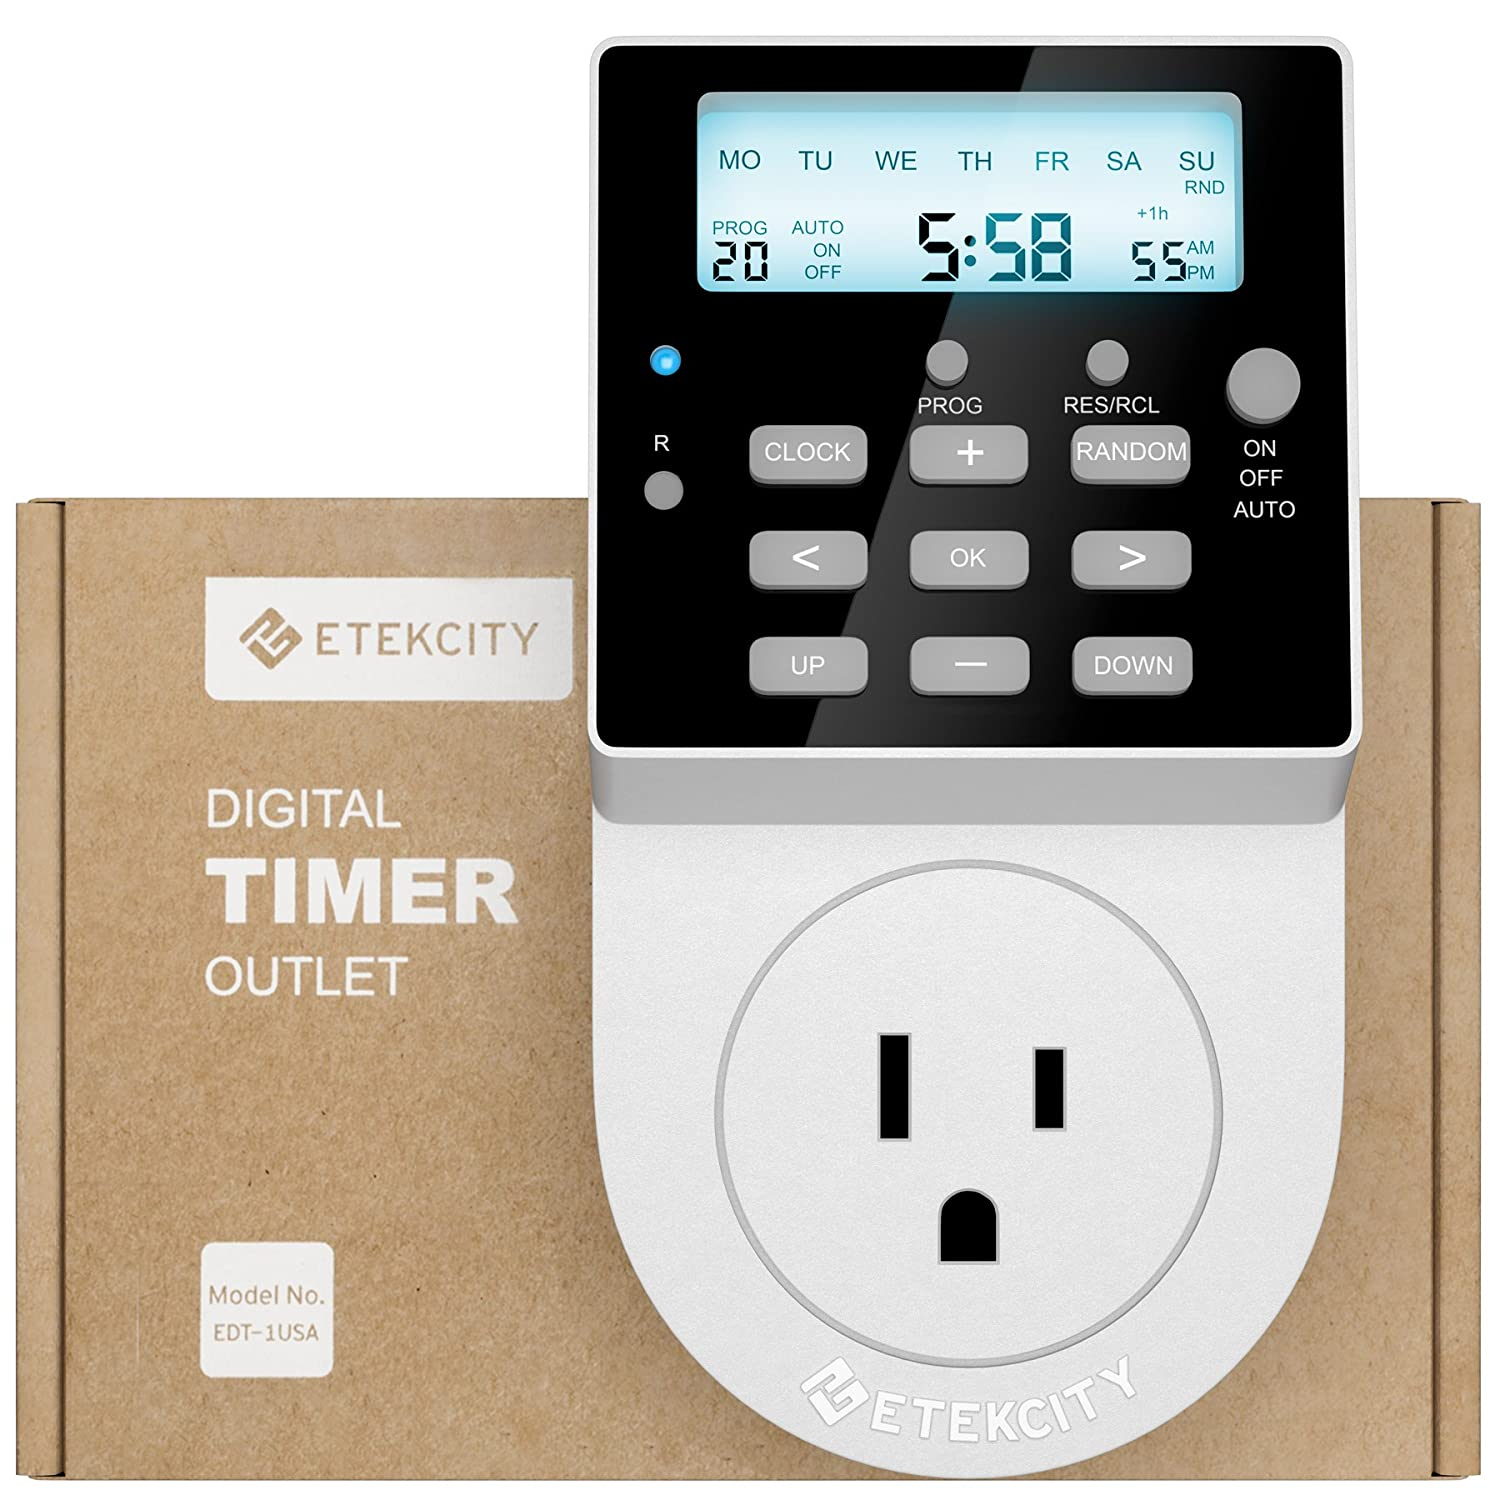 Etekcity Light Timer Outlet -.